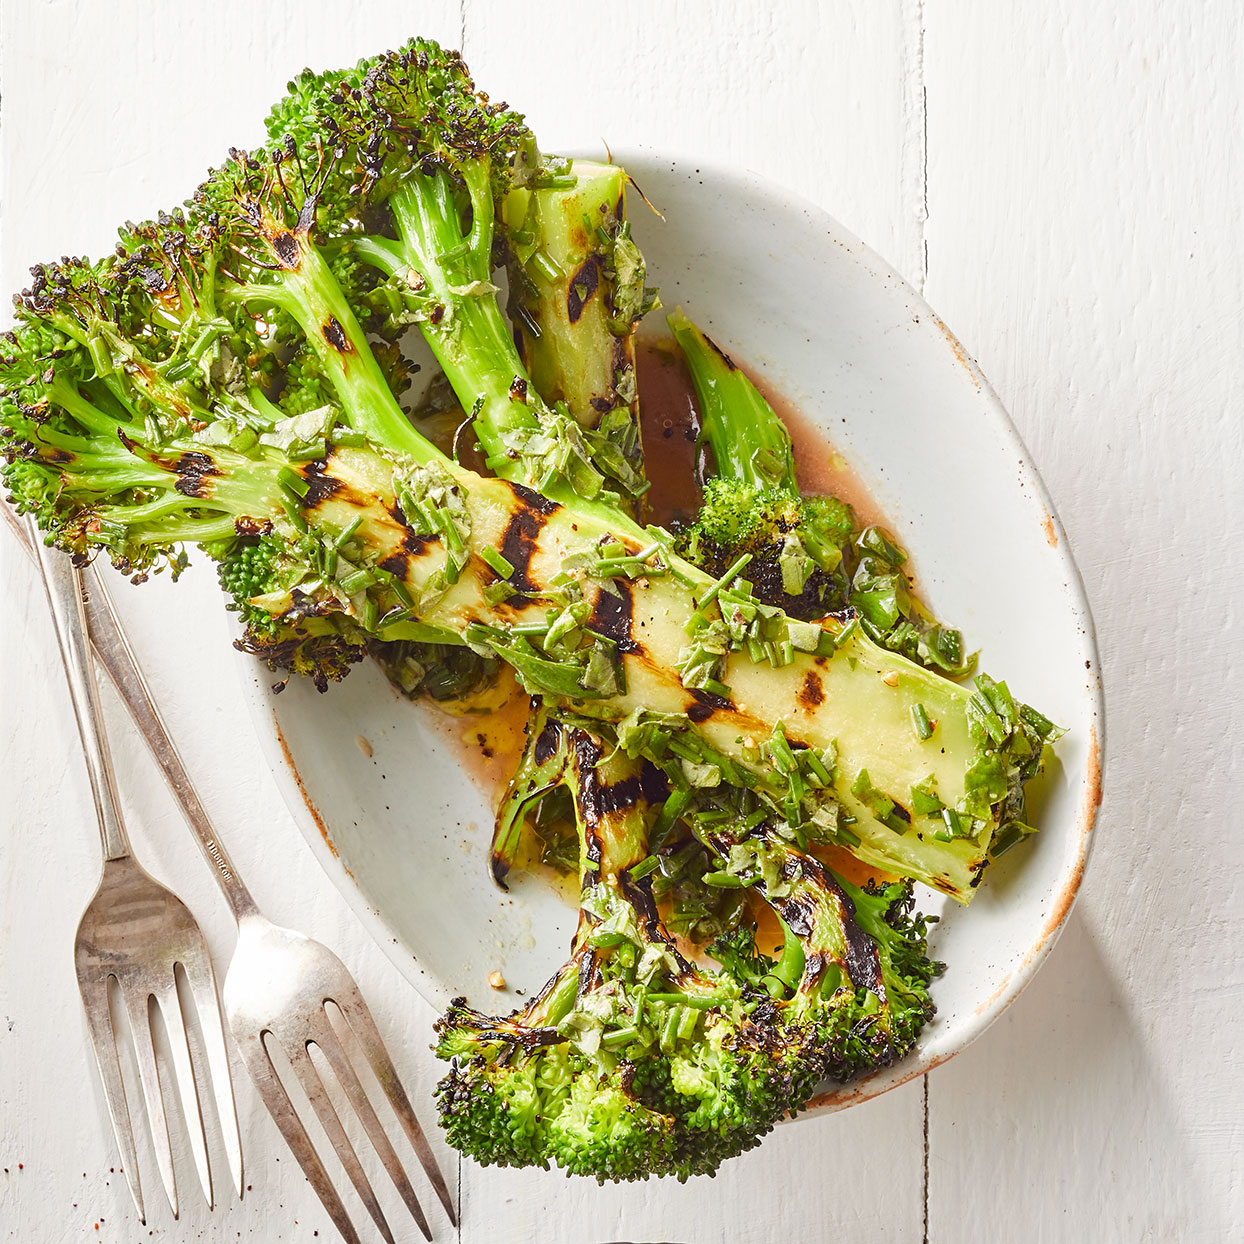 Grilled Broccoli Wedges with Herb Vinaigrette